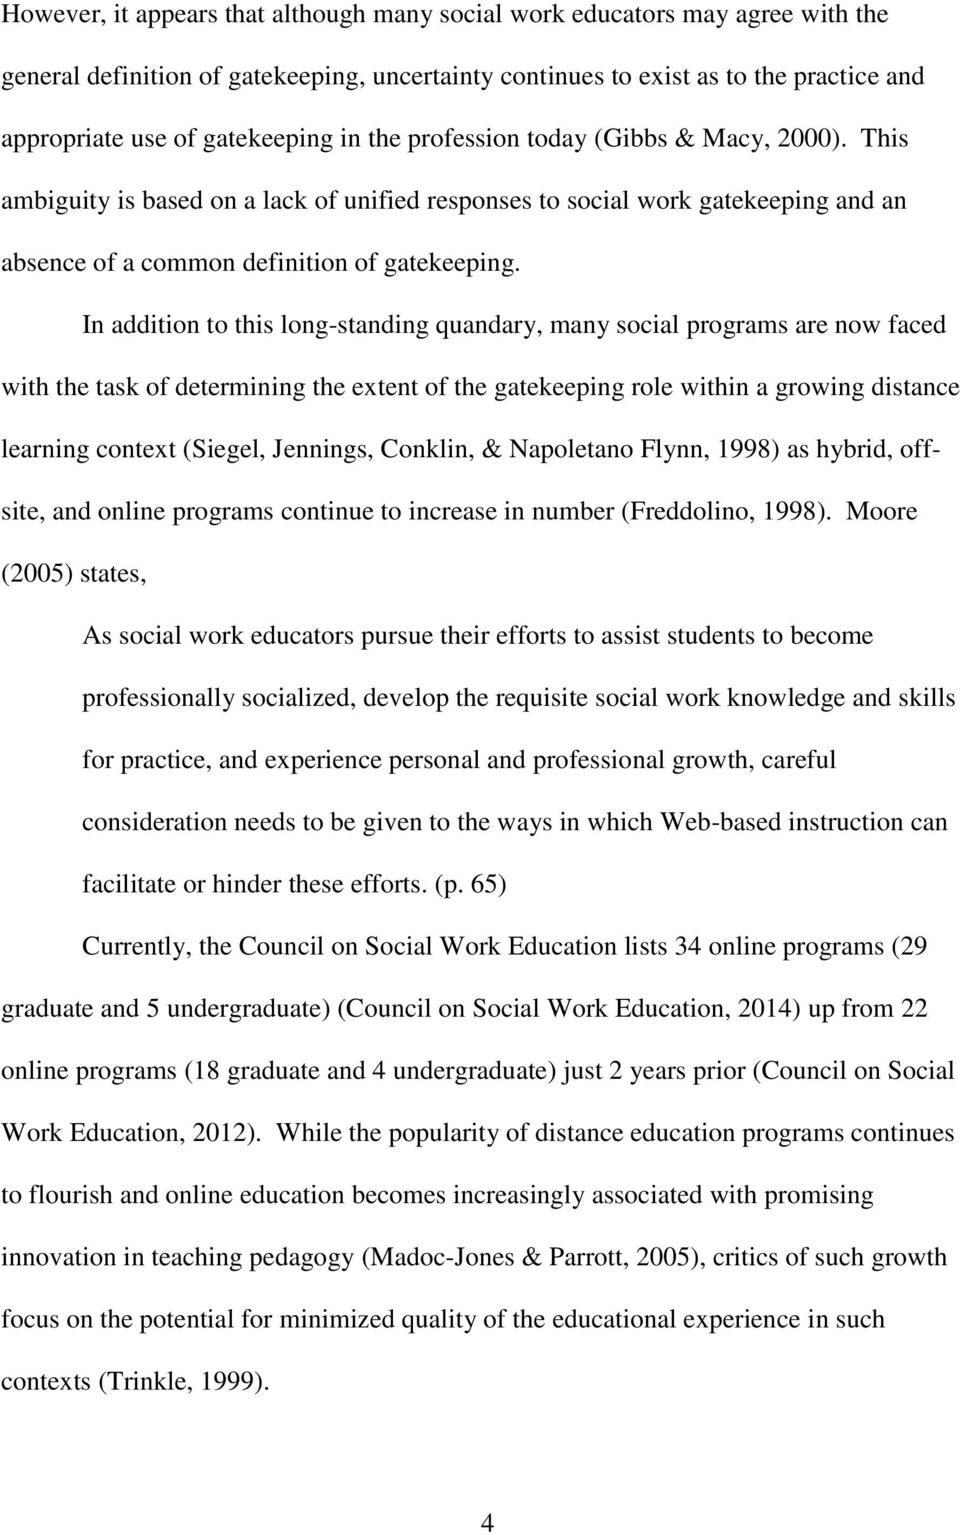 In addition to this long-standing quandary, many social programs are now faced with the task of determining the extent of the gatekeeping role within a growing distance learning context (Siegel,